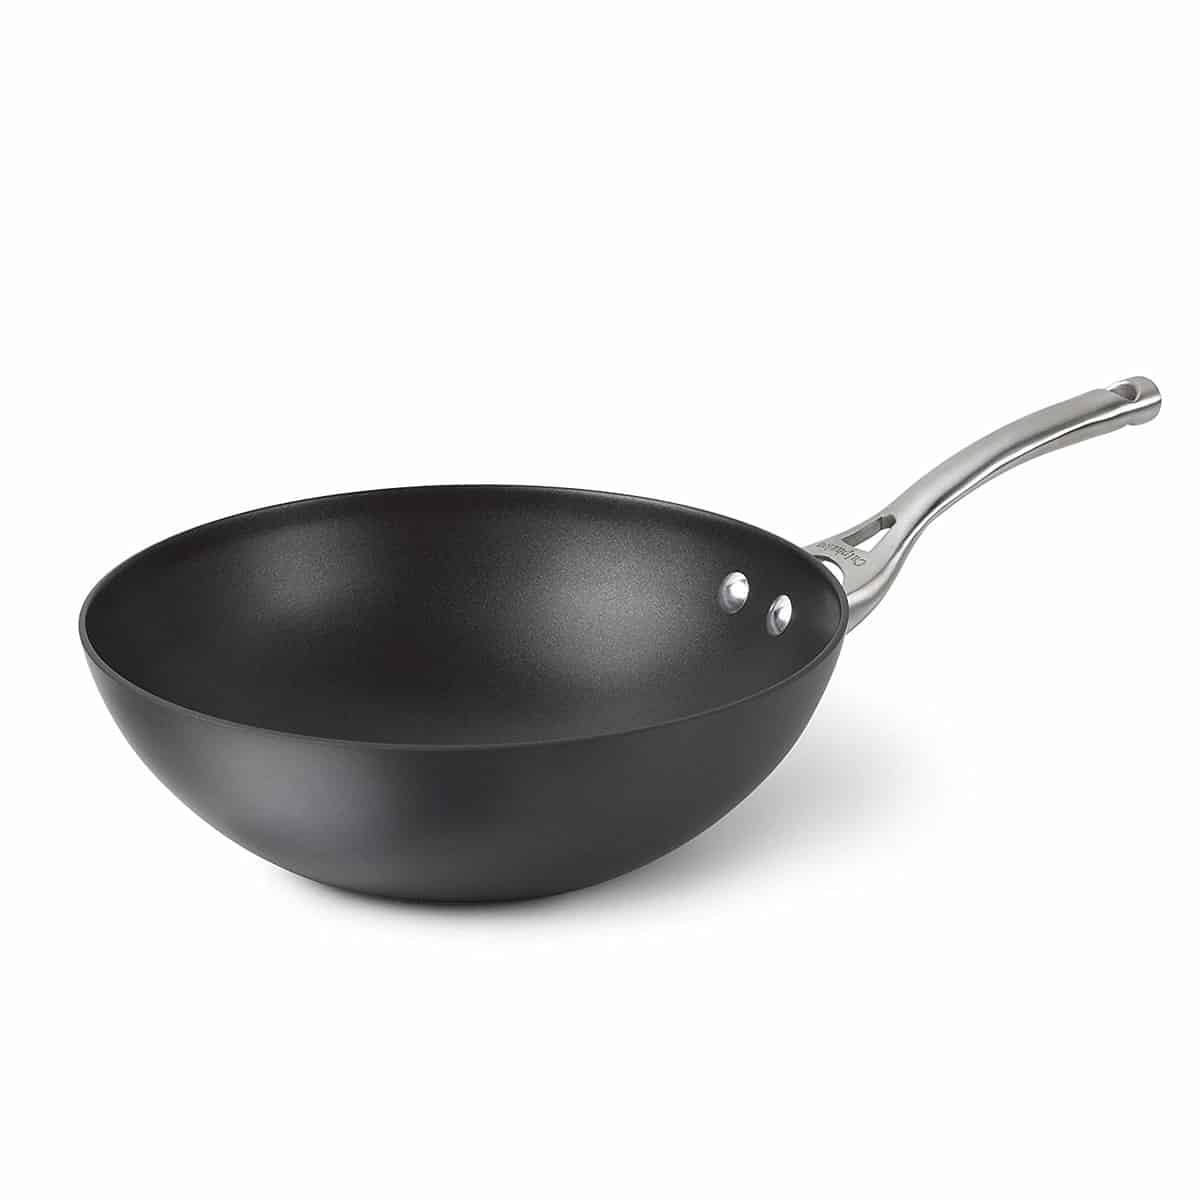 Calphalon Contemporary Hard-Anodized Aluminum Nonstick Cookware, Flat-Bottom Wok, 10-inch, Black, Best woks